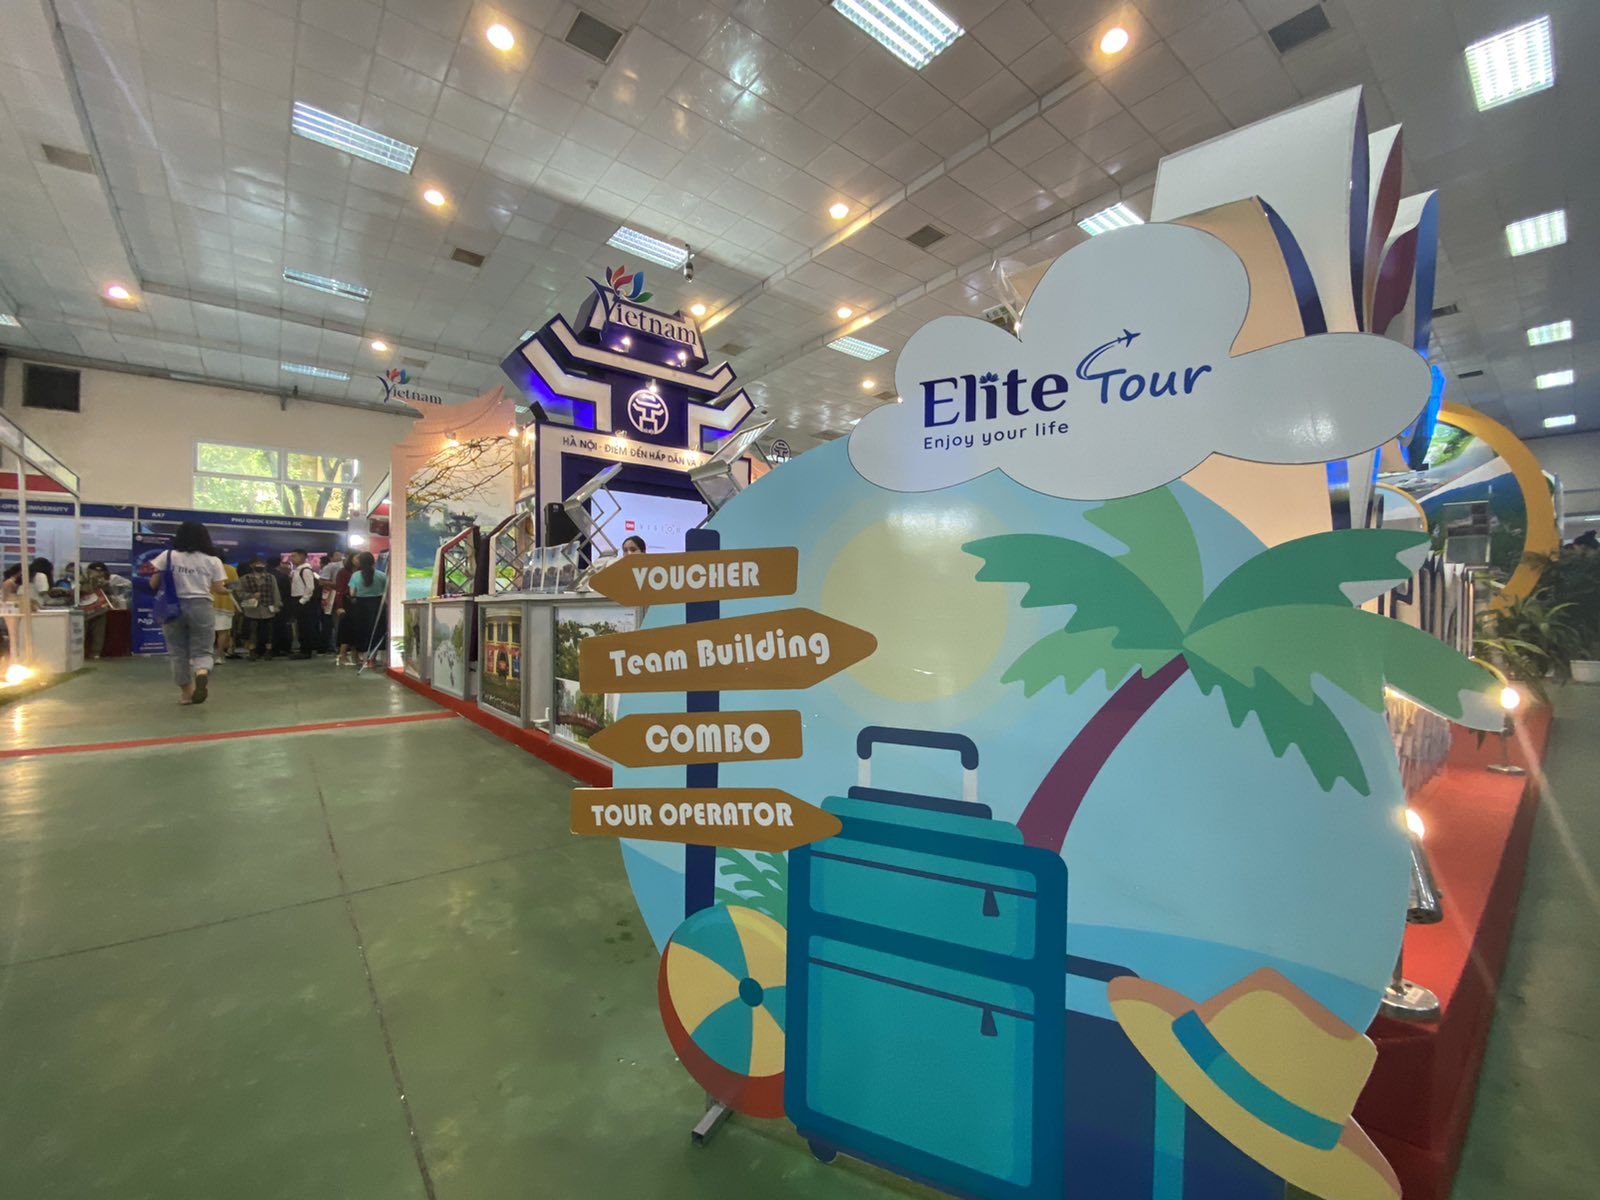 elite-tour-tai-hoi-cho-du-lich-quoc-te-viet-nam-vietnam-international-travel-mart-vitm-2020